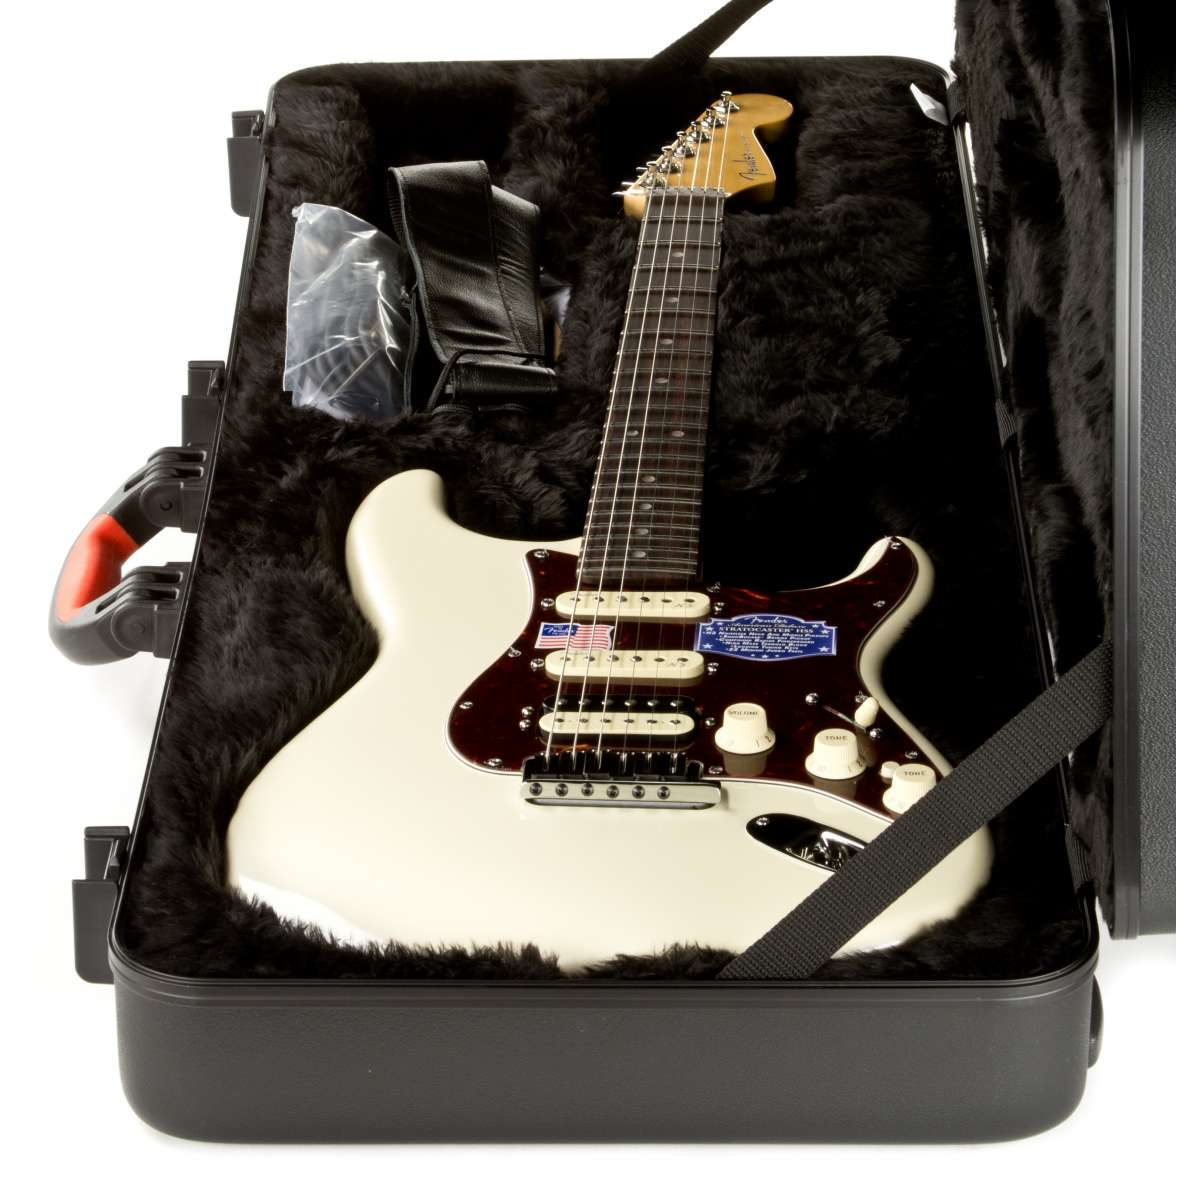 Fender American Deluxe Strat Hss Rw Olympic Pearl White Best Wiring Diagrams Mirage Speakers Diagram Stratocaster Guitarra Eltricas De